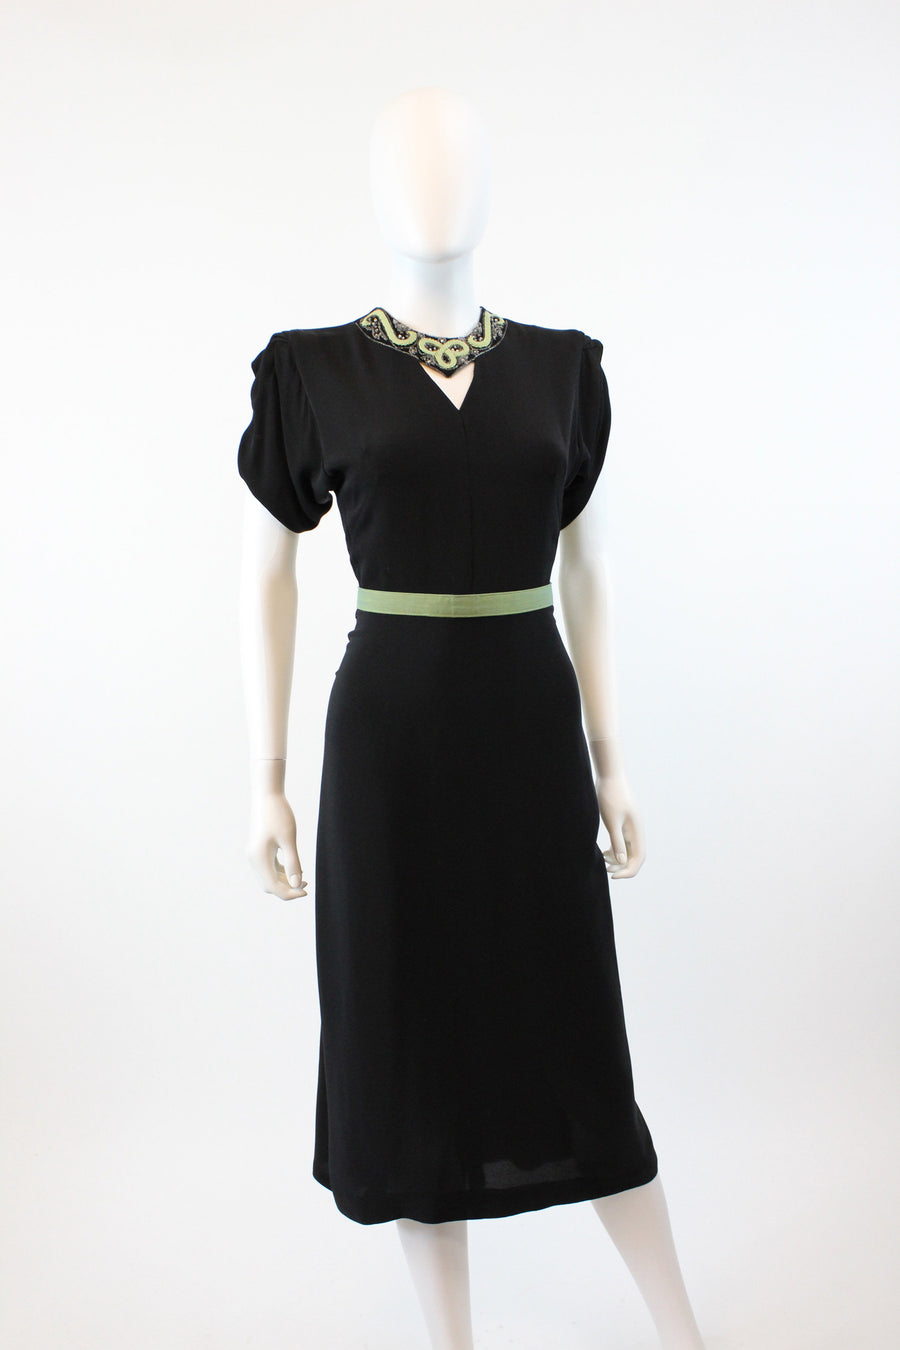 1940s rayon beaded dress xs | vintage peek a boo pistachio dress | new in